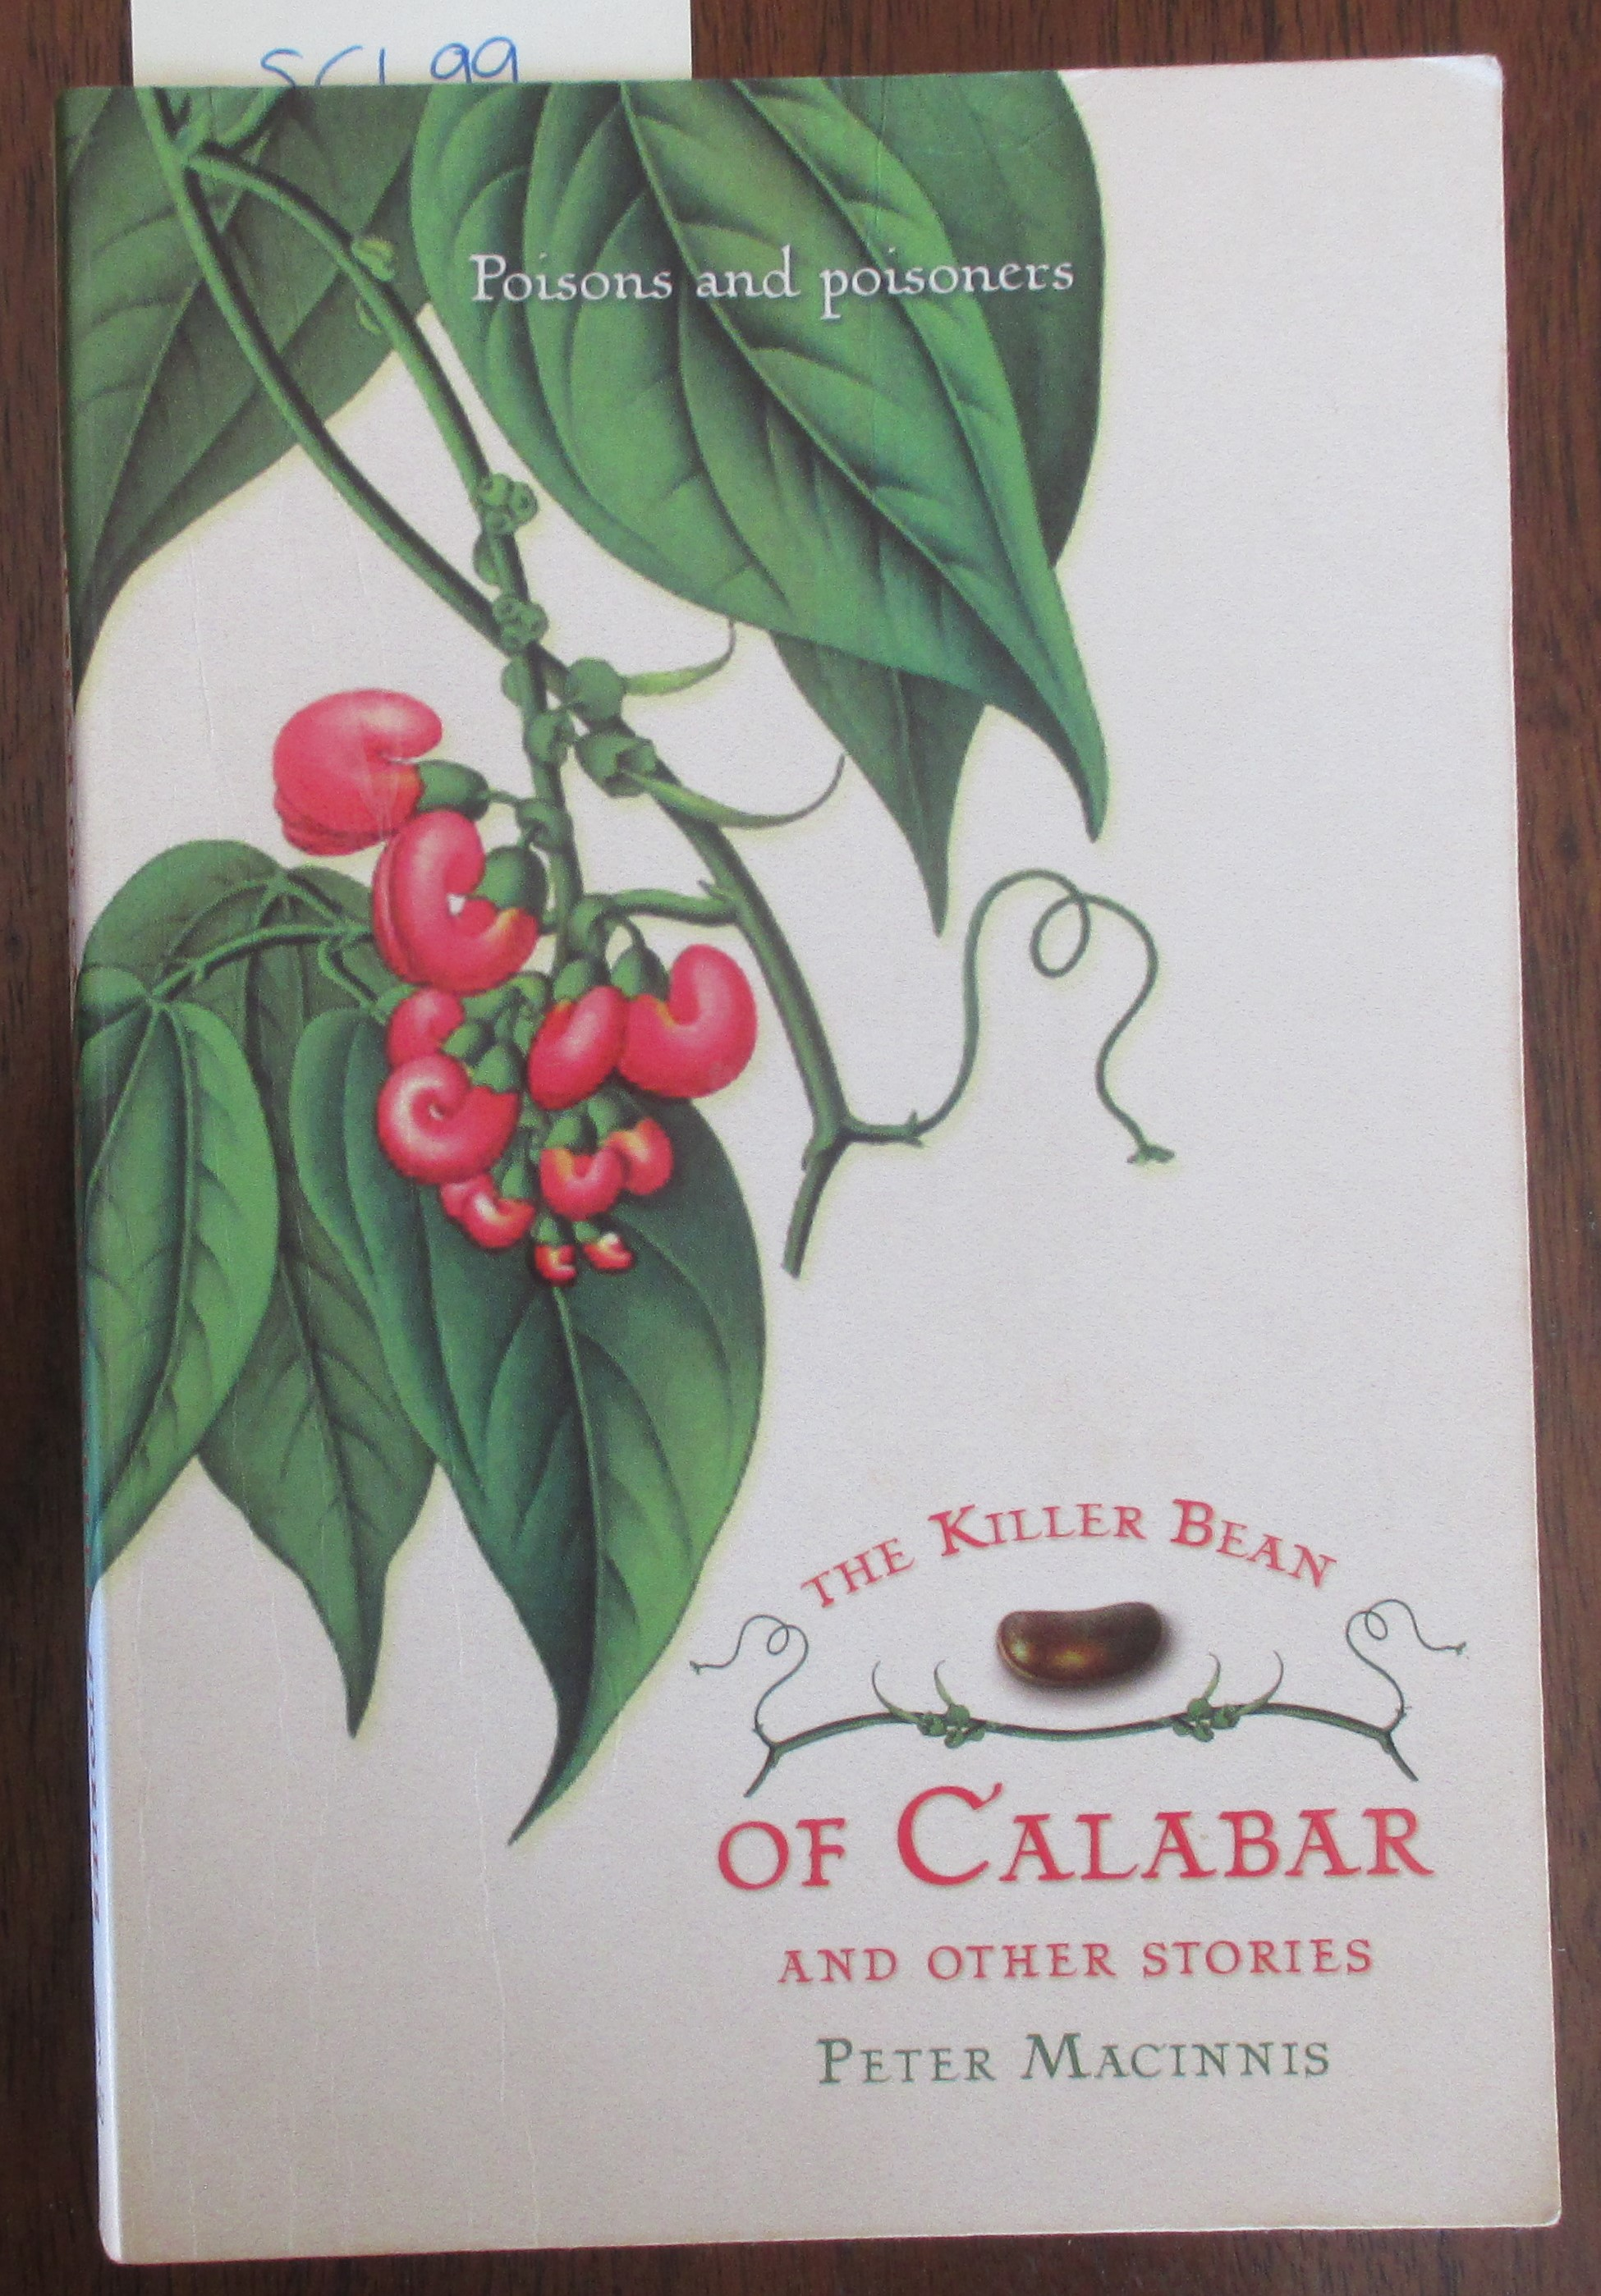 Image for Killer Bean of Calabar and Other Stories, The: Poisons and Poisoners